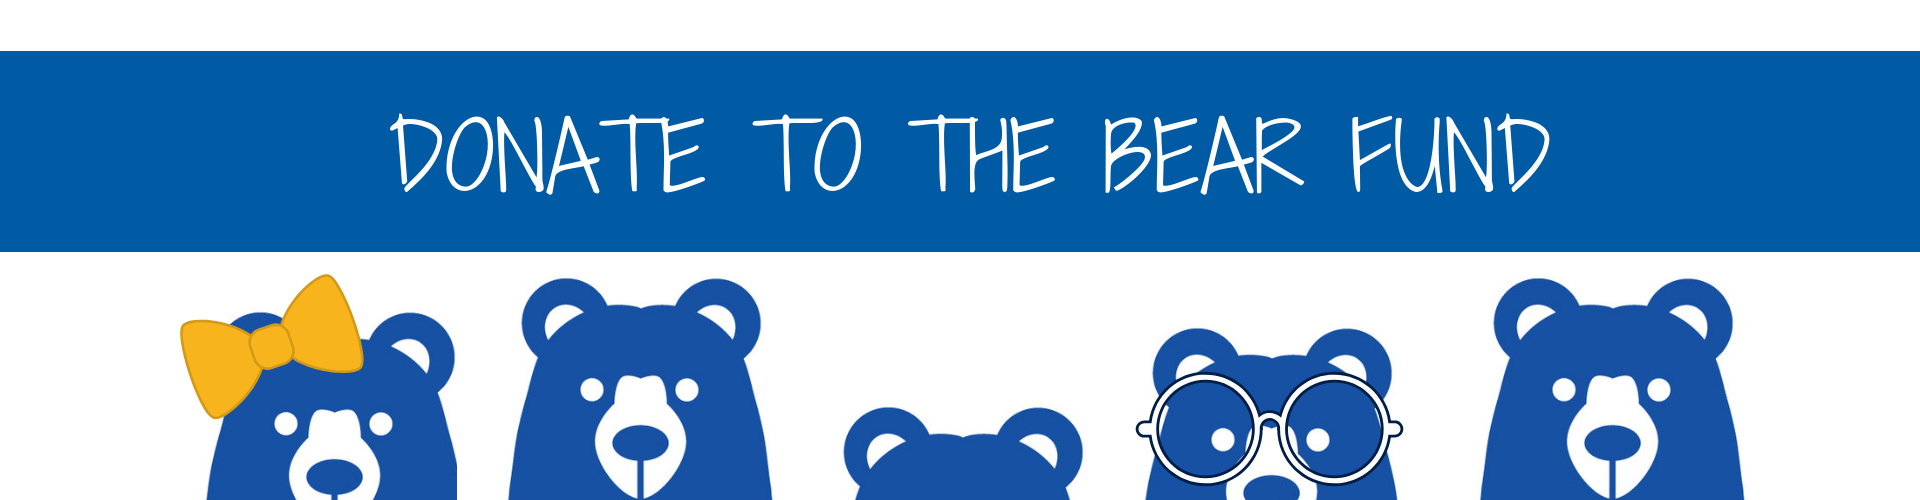 Donate To The Bear Fund Today!